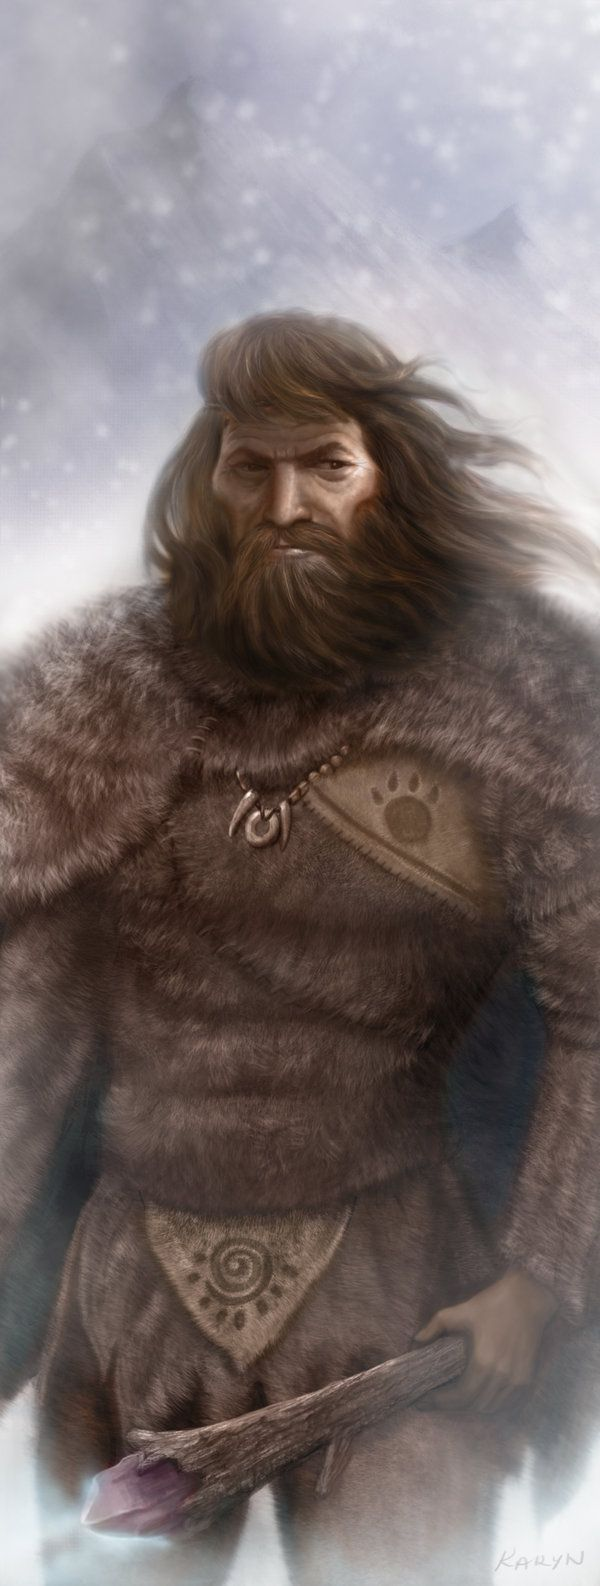 Best 25+ Cro magnon ideas on Pinterest | Cave painting, Cave paintings france and Cave drawings